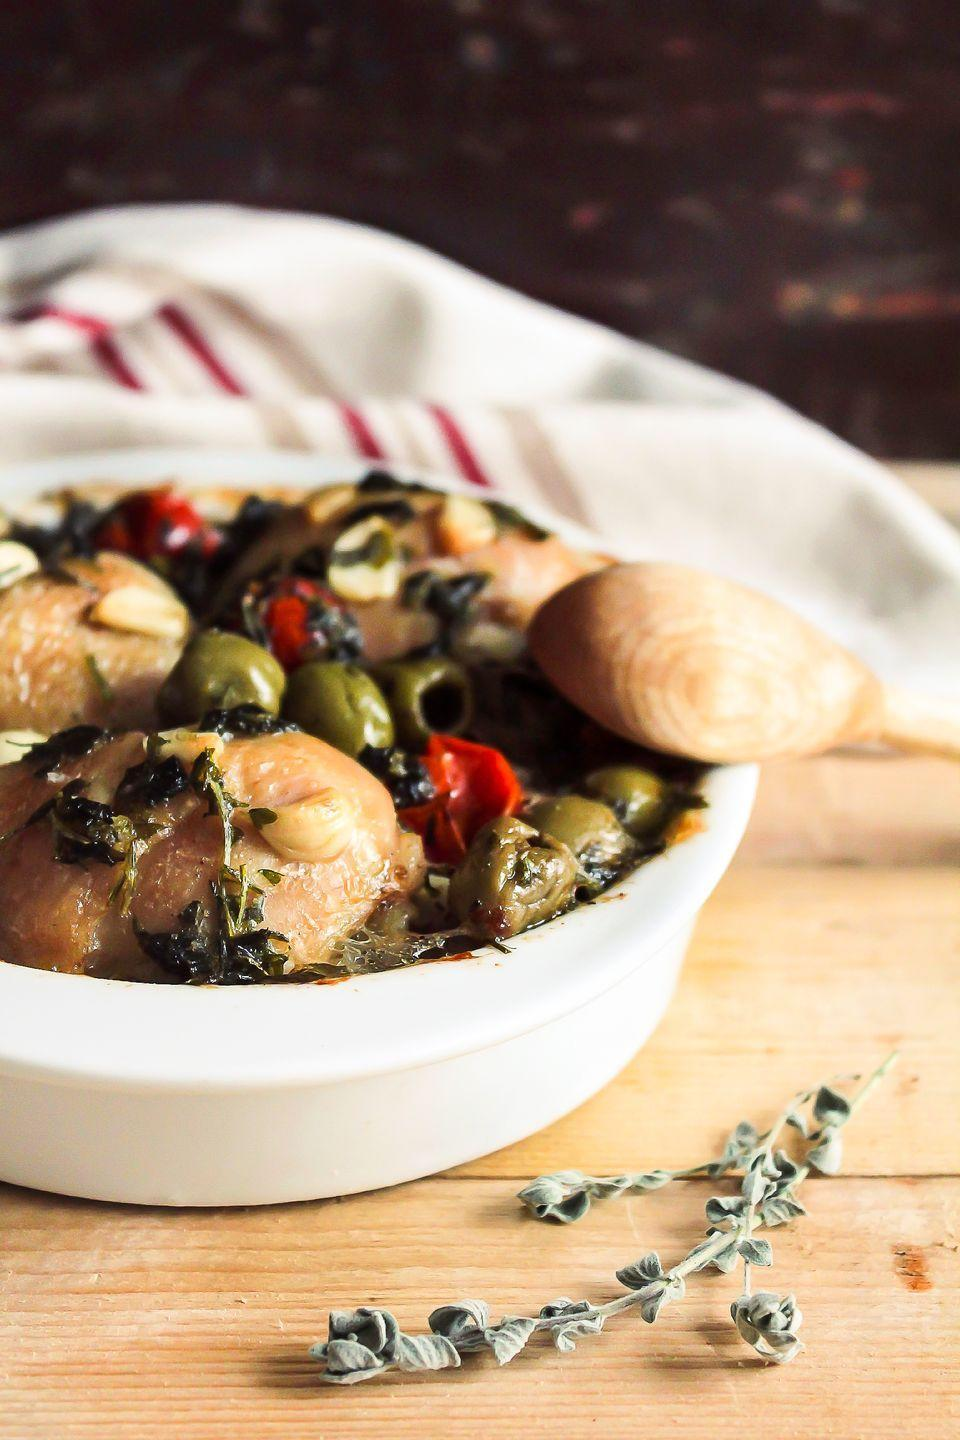 """<p>The fragrance of Rosemary-Garlic Chicken spiked with zesty green olives will entice hungry guests into your kitchen. This dish yields a savory broth; serve it along with a loaf of crusty bread for dipping.</p><p><strong><a href=""""https://www.countryliving.com/food-drinks/recipes/a1619/rosemary-garlic-chicken-3733/https://www.countryliving.com/food-drinks/recipes/a1619/rosemary-garlic-chicken-3733/"""" rel=""""nofollow noopener"""" target=""""_blank"""" data-ylk=""""slk:Get the recipe"""" class=""""link rapid-noclick-resp"""">Get the recipe</a>.</strong></p>"""